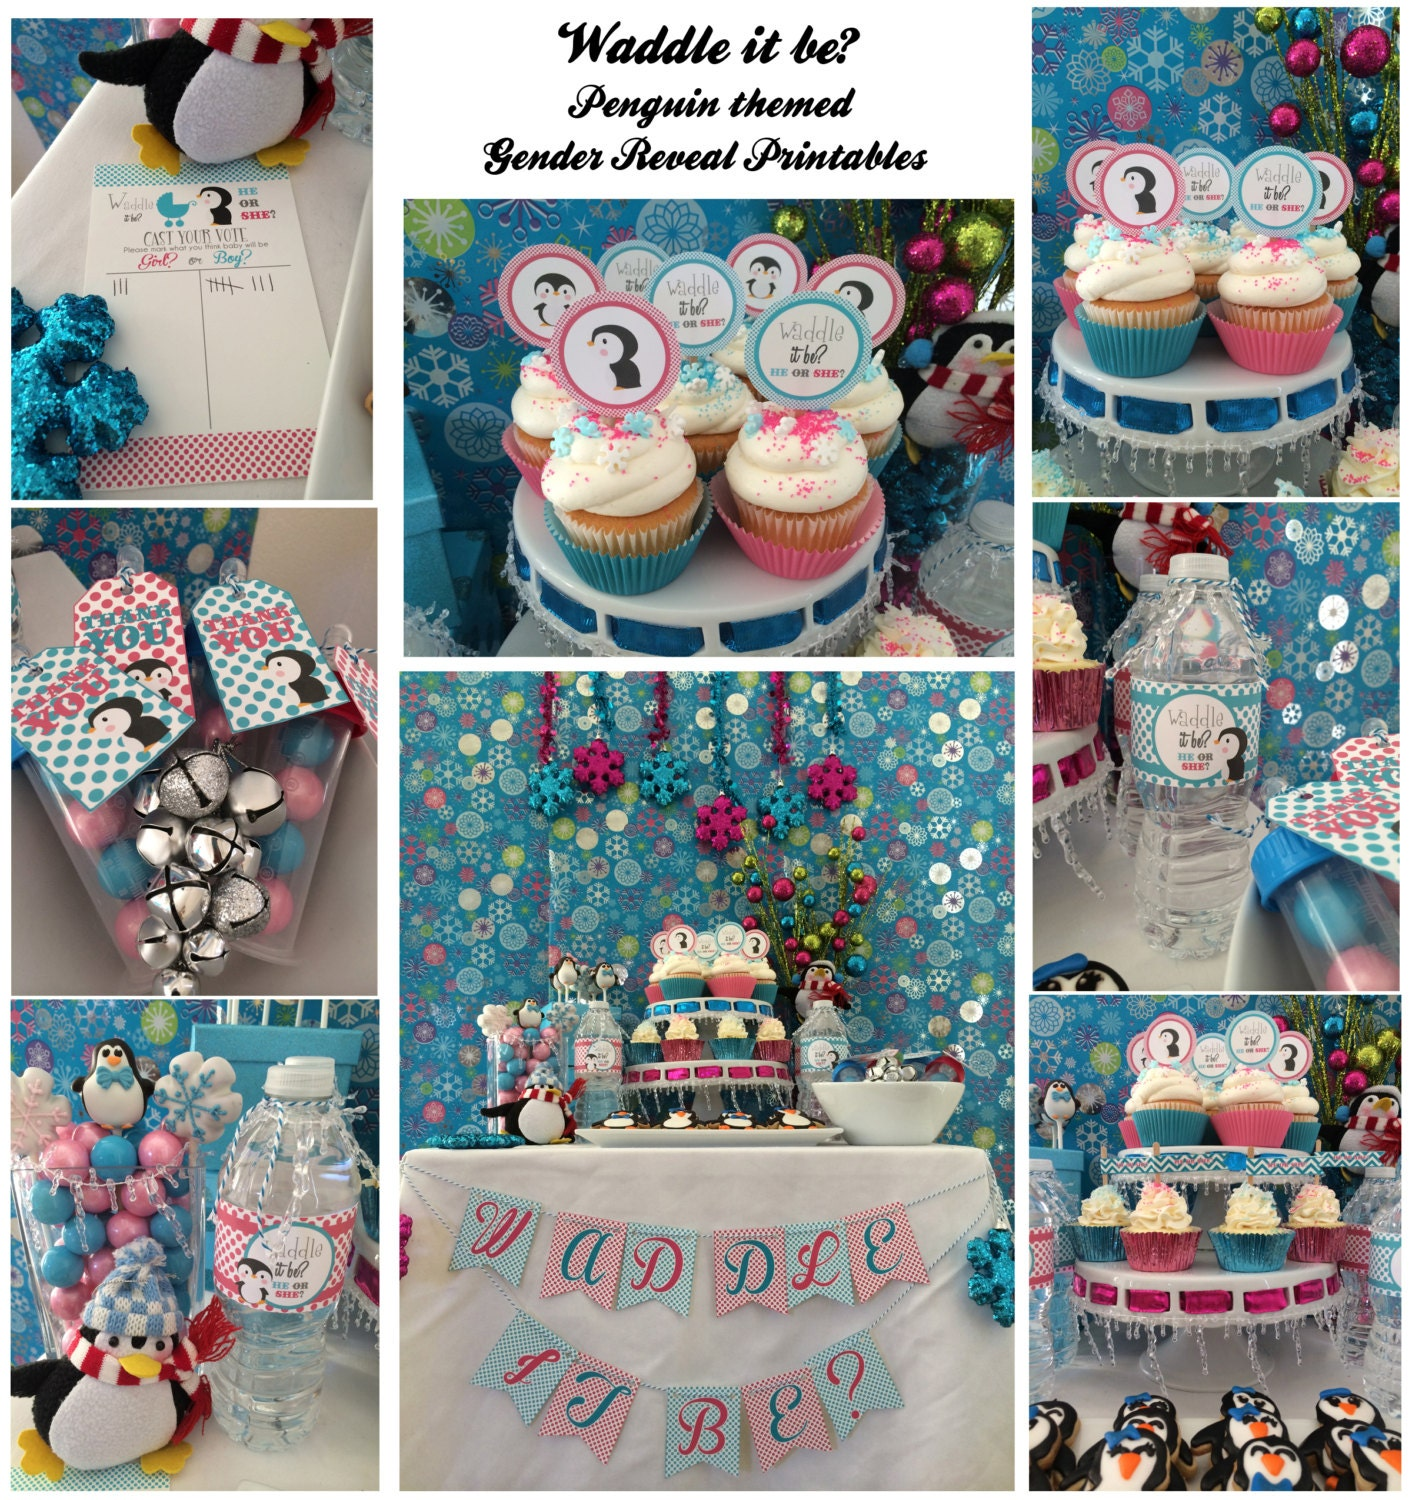 Waddle it be Penguin Gender Reveal for Winter Baby PARTY